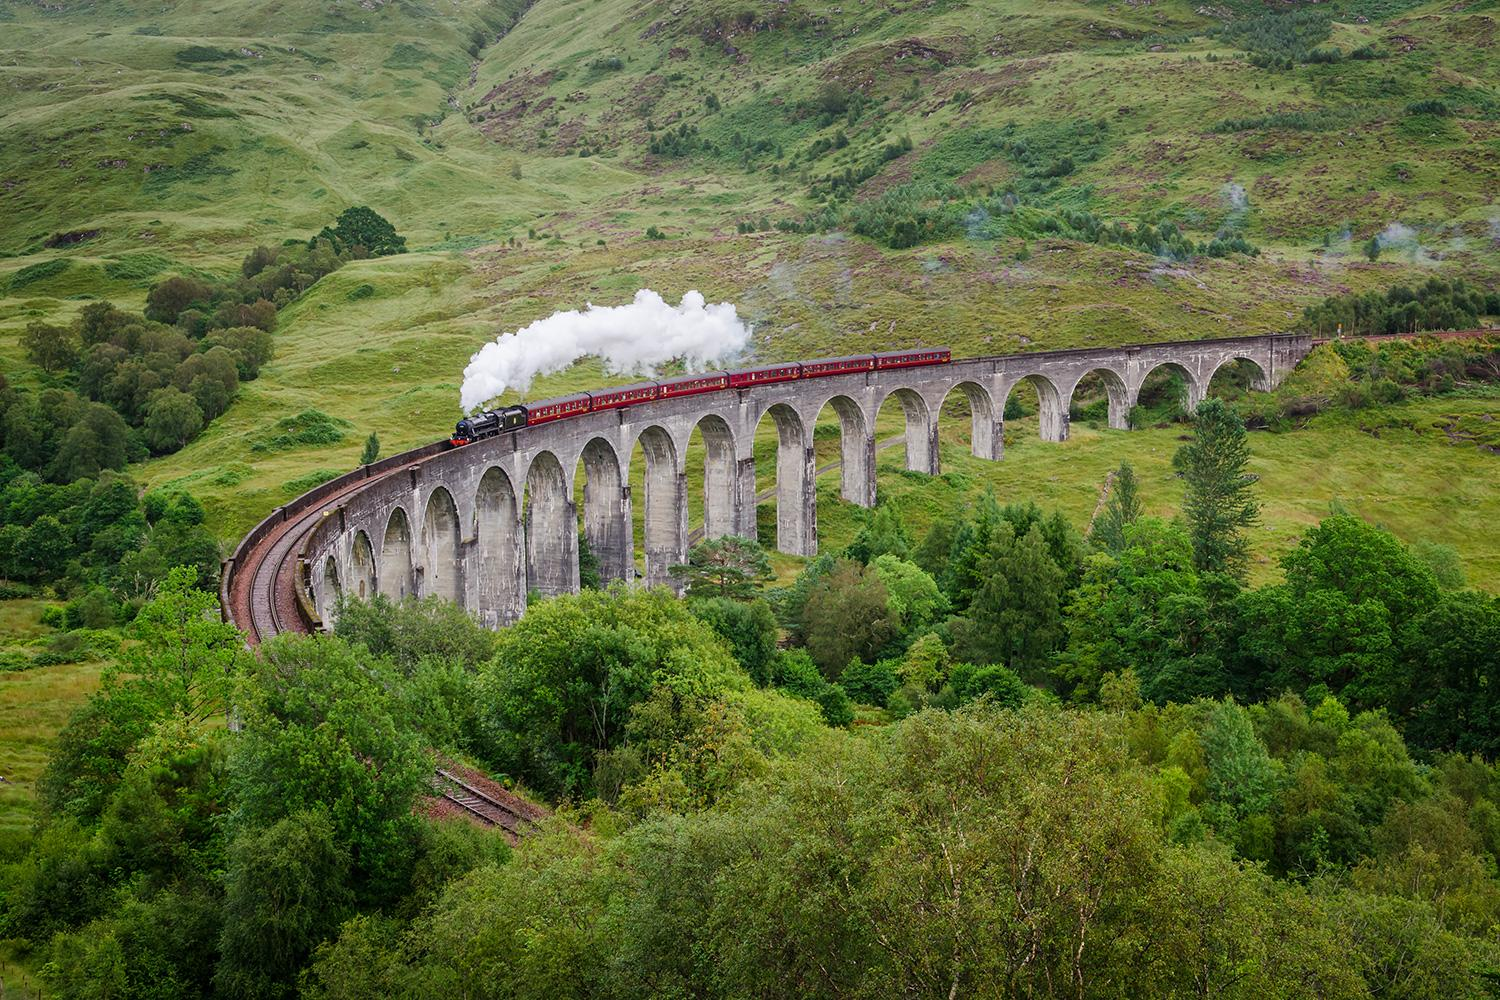 Rolling over the 21 soaring arches of Glenfinnan Viaduct on the West Highland Line